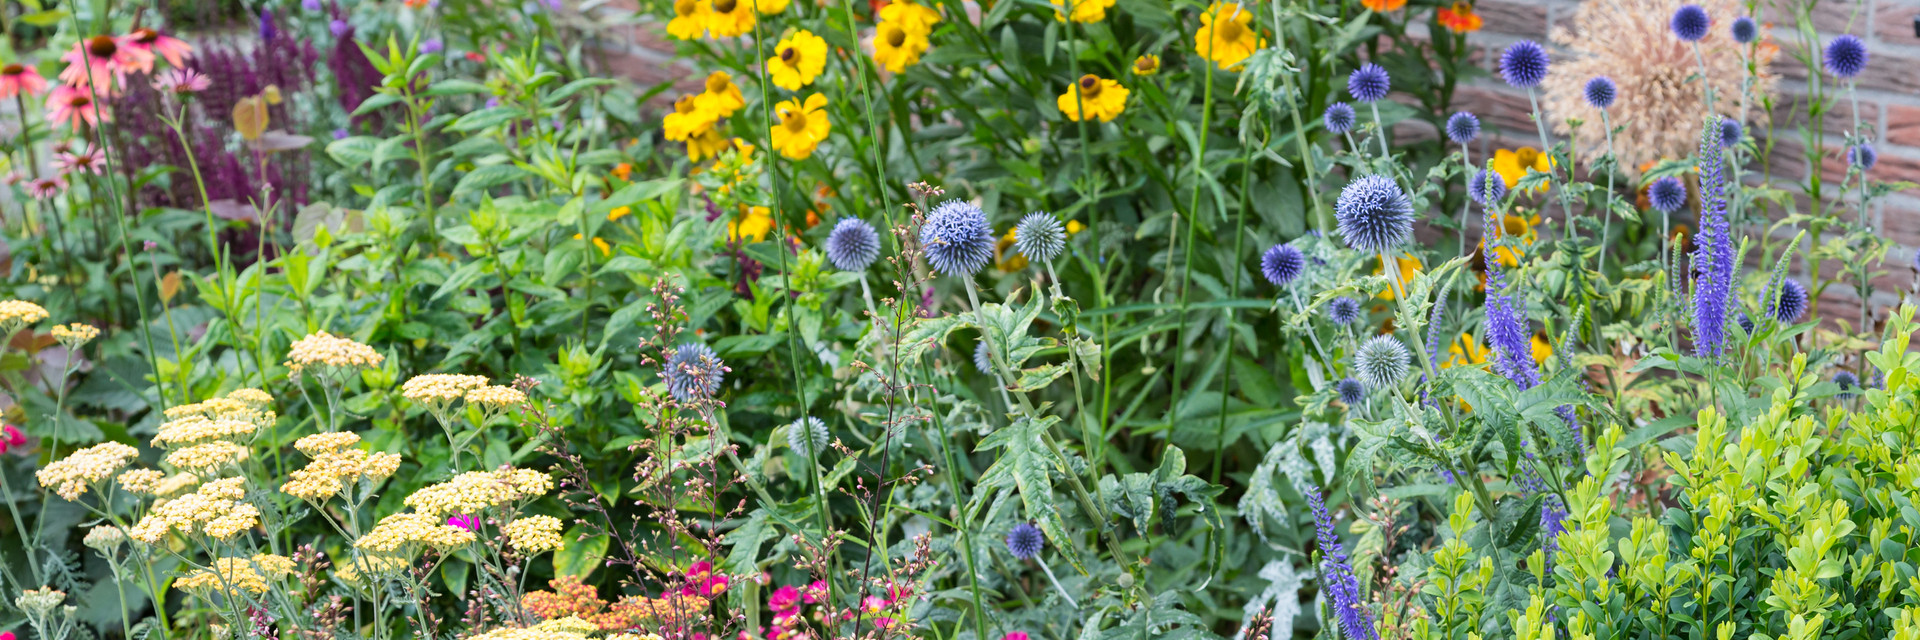 How to Transition Your Garden to Perennials